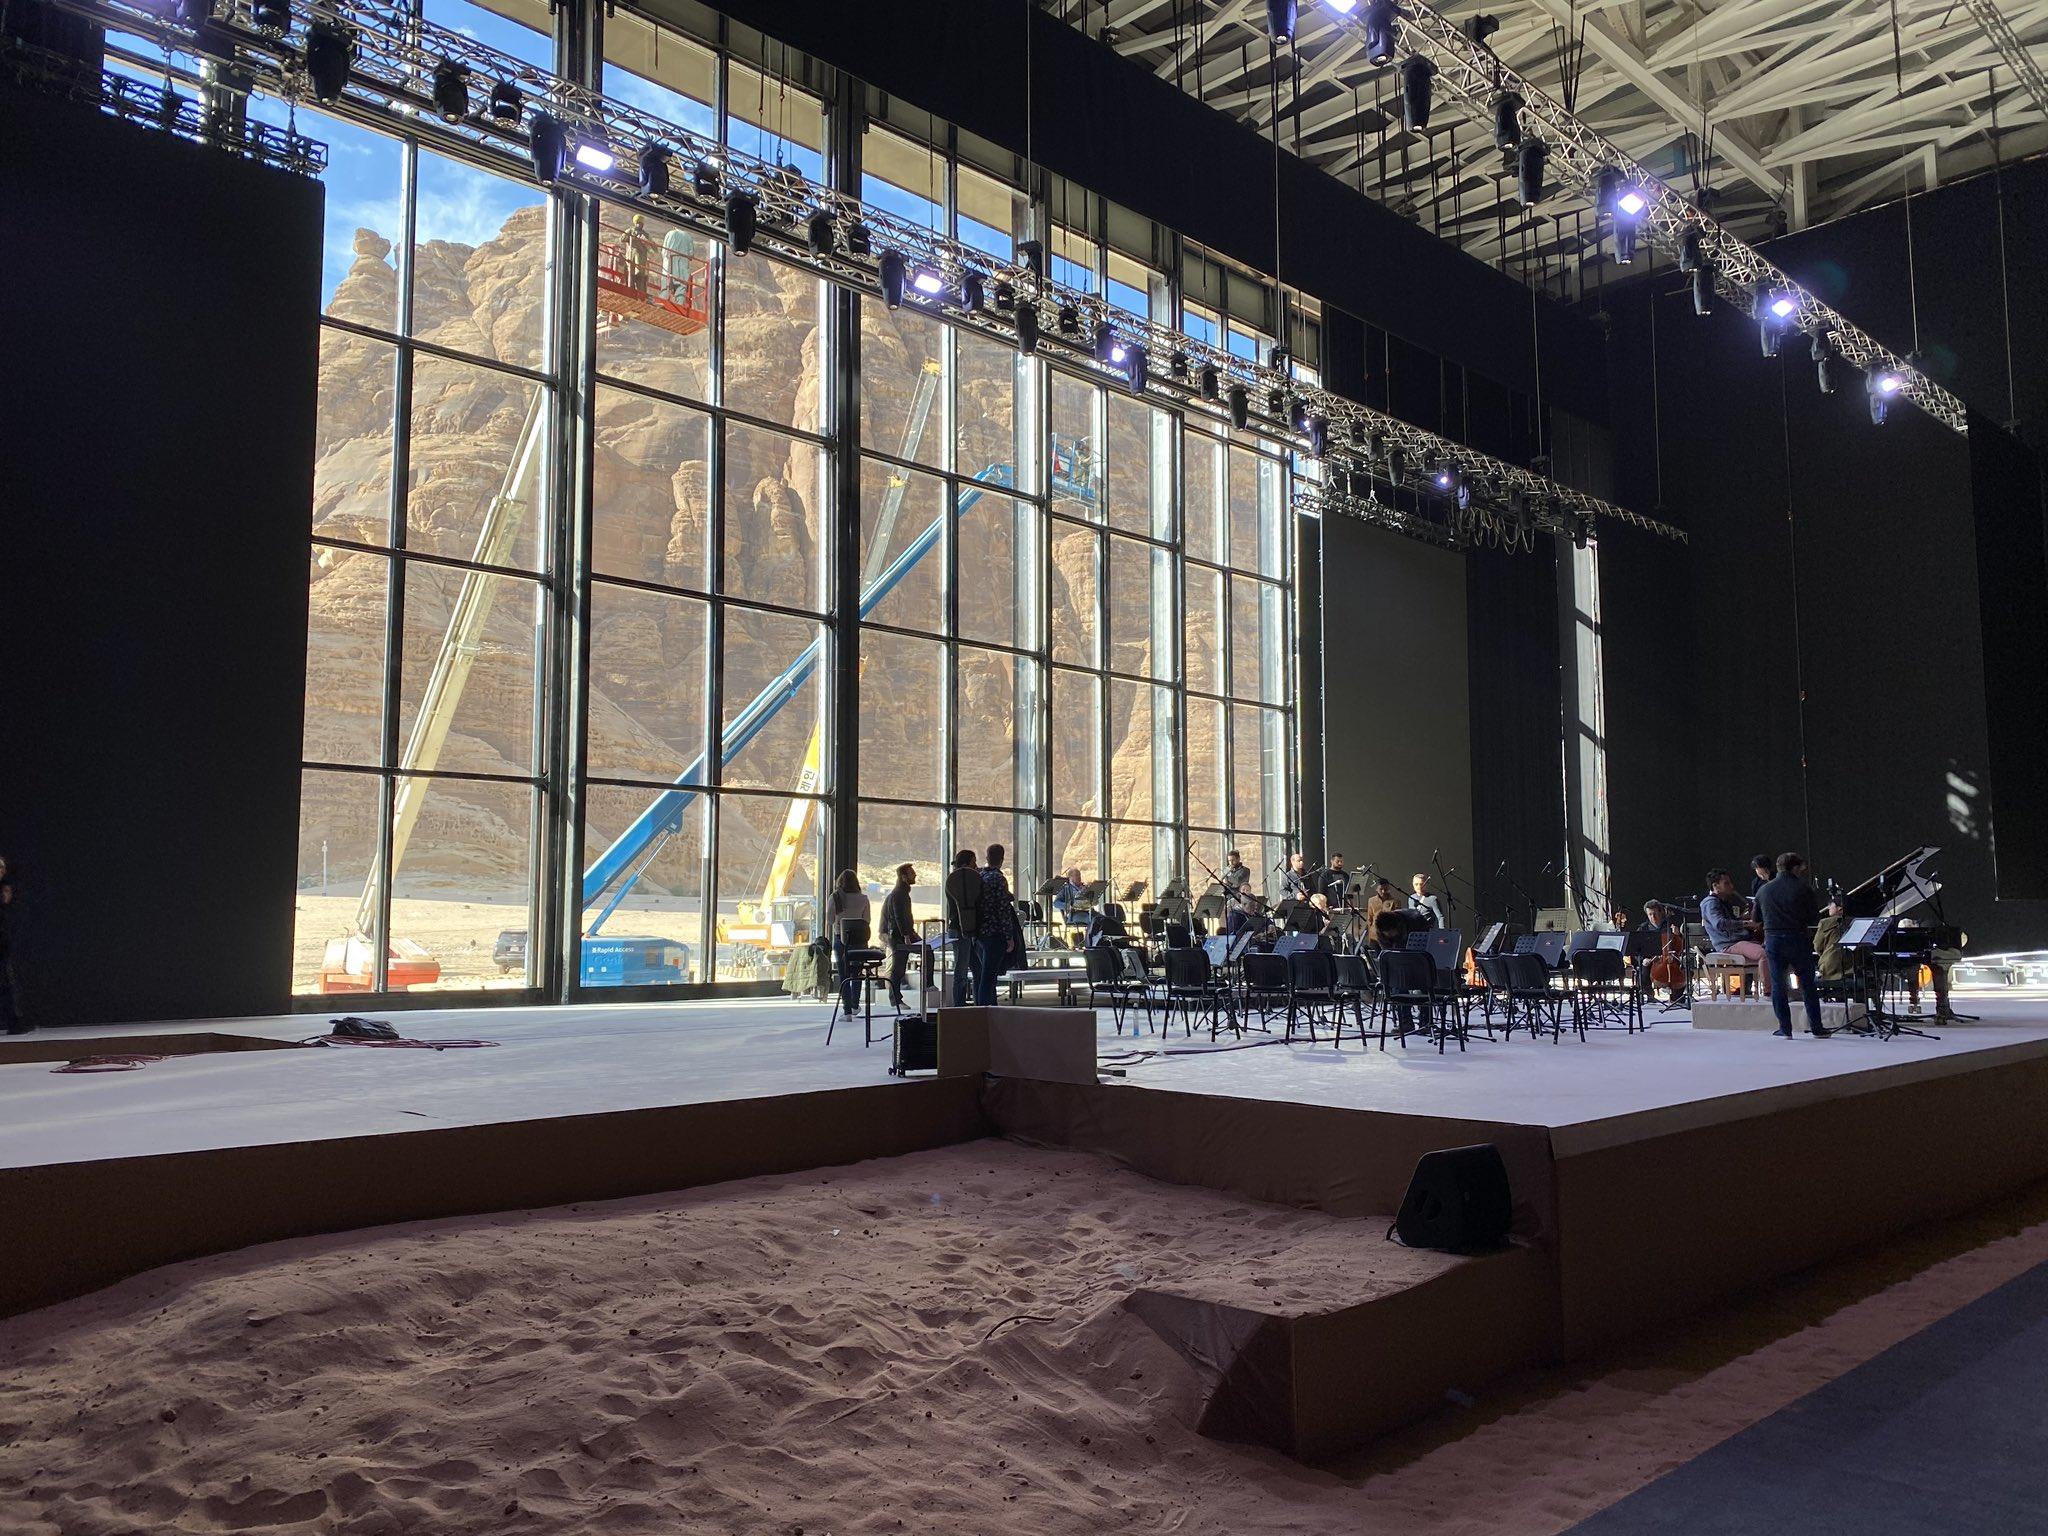 French orchestra plays Beethoven in Saudi desert